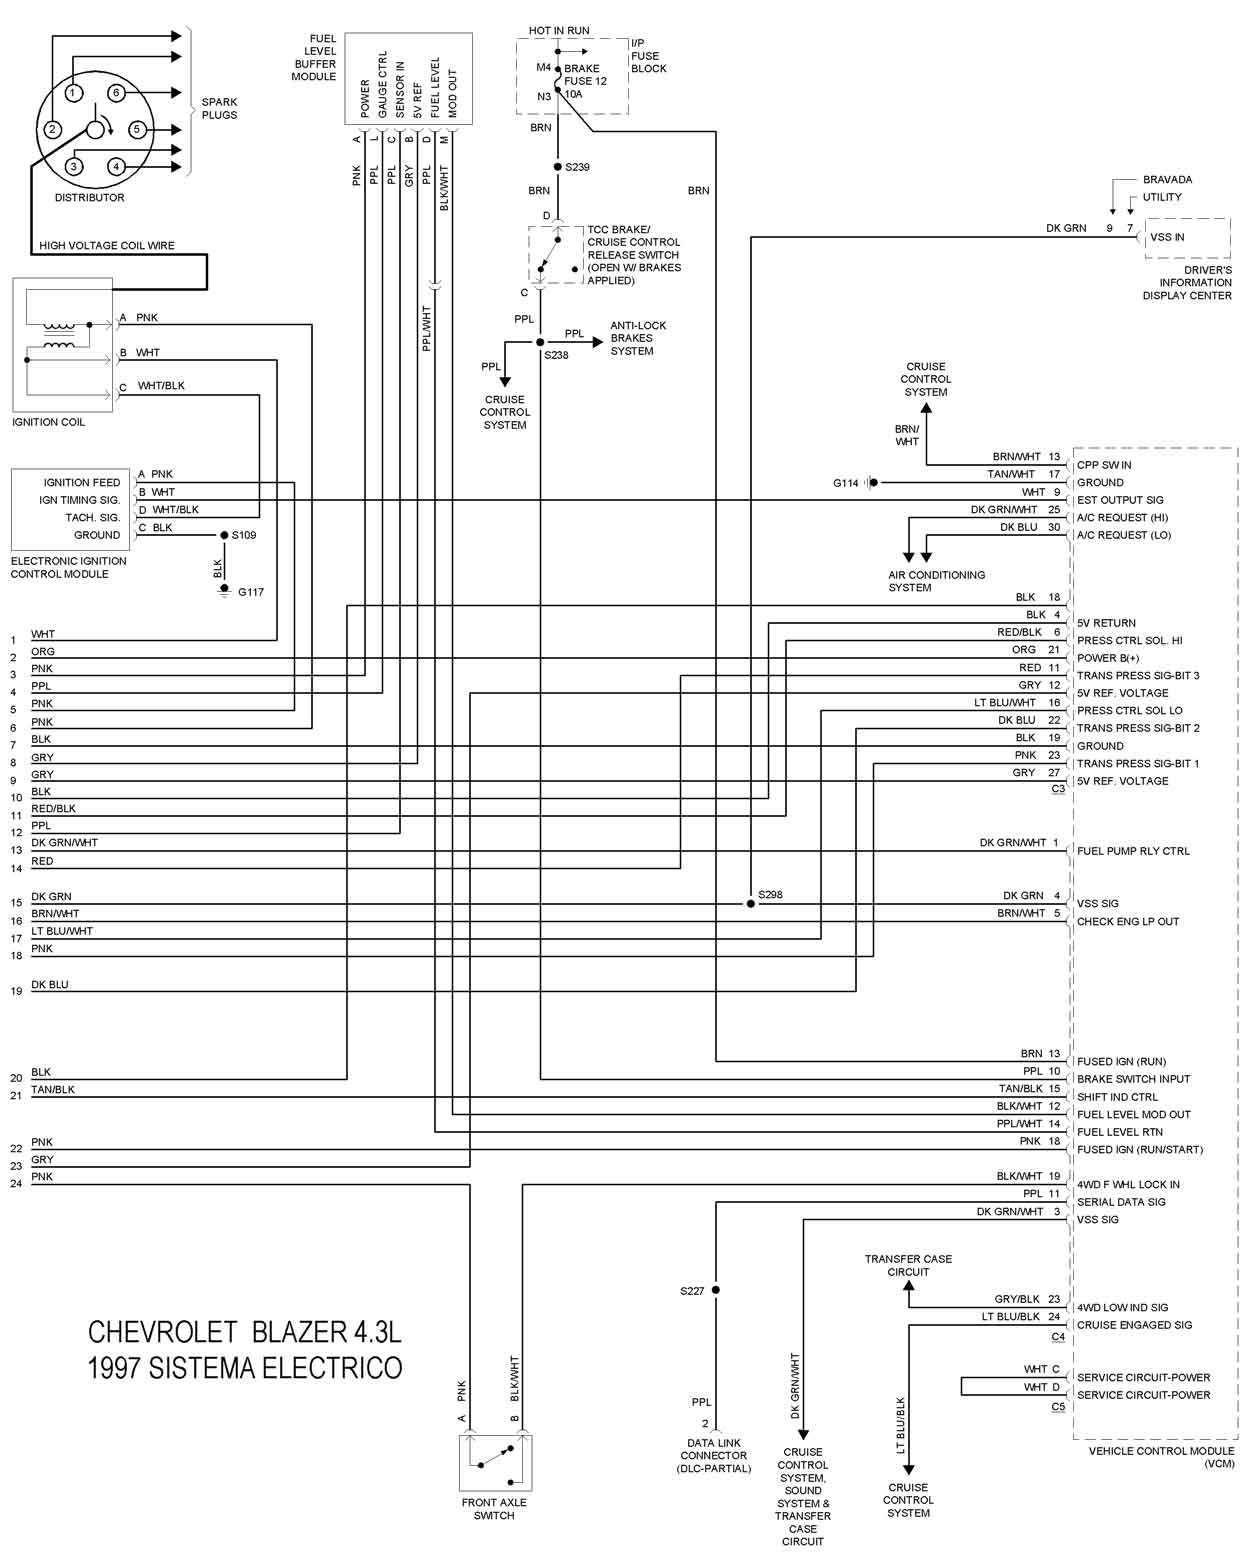 Fuel Pump Relay Location 1994 furthermore Abs Fuse Location 2003 Gmc Yukon furthermore P 0996b43f80382703 in addition Low Coolant Level Sensor Location besides How To Pro Street A 1968 72 Chevy Truck. on chevy blazer wiring diagram